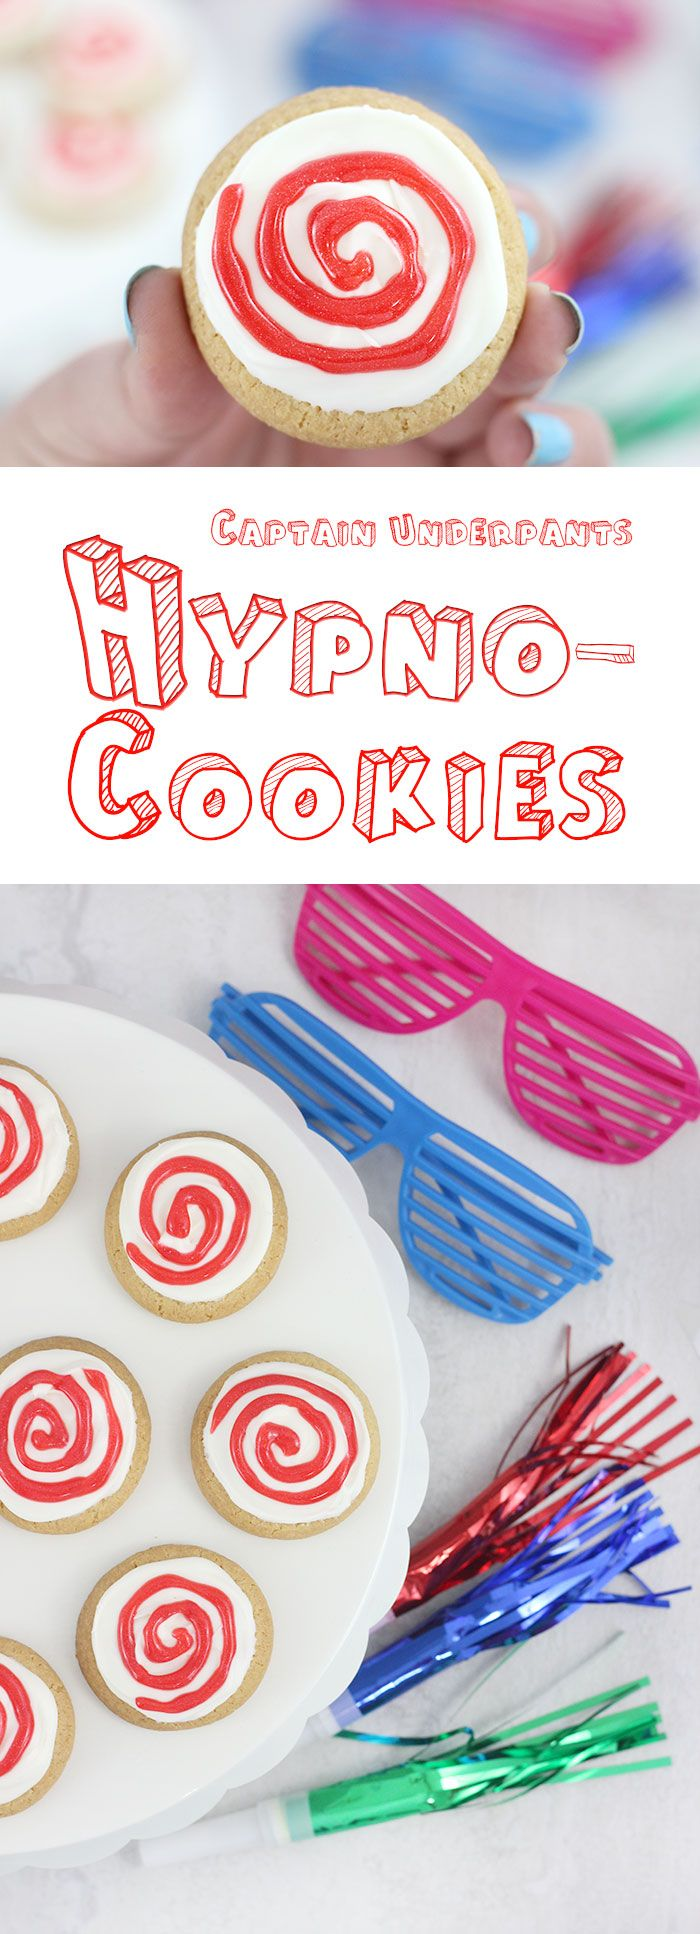 Captain Underpants Movie Party Ideas. DIY Superhero Cups, Hypno Cookies. DIY with Tampico. #ad #UnbottledLaffter #TampicoJuice #DrinkTampico